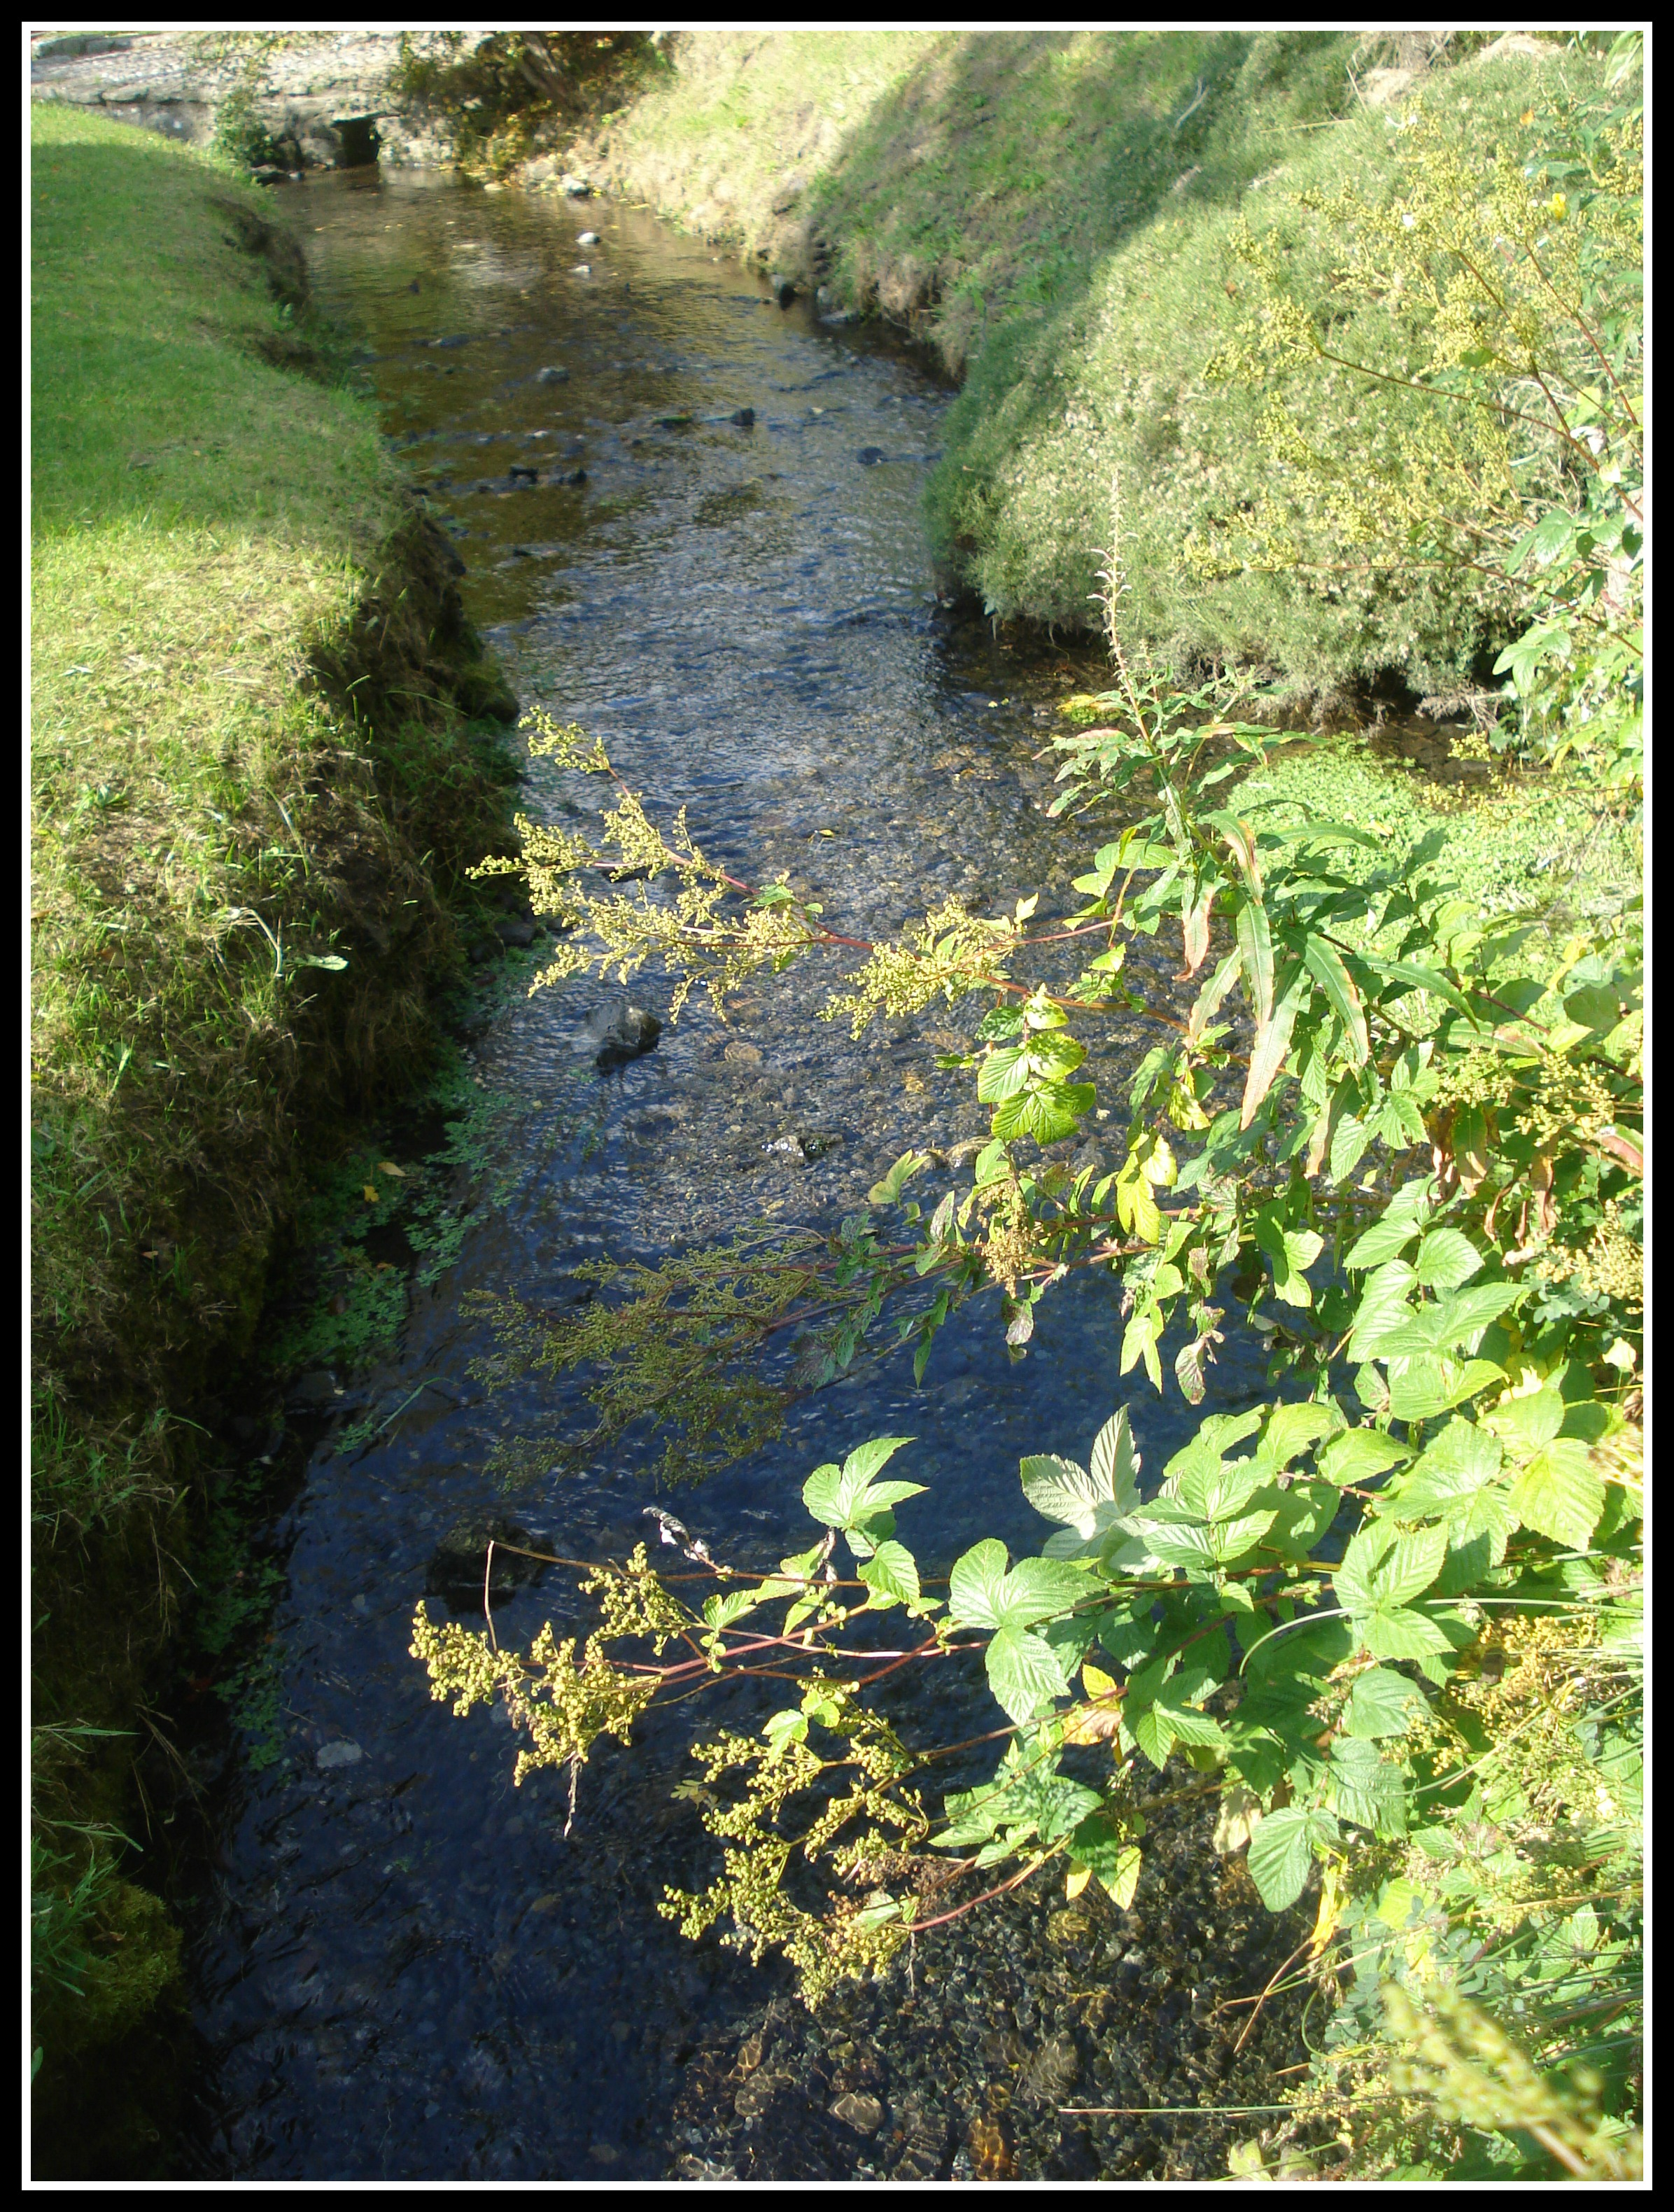 A stream at St. Brigid's Well.